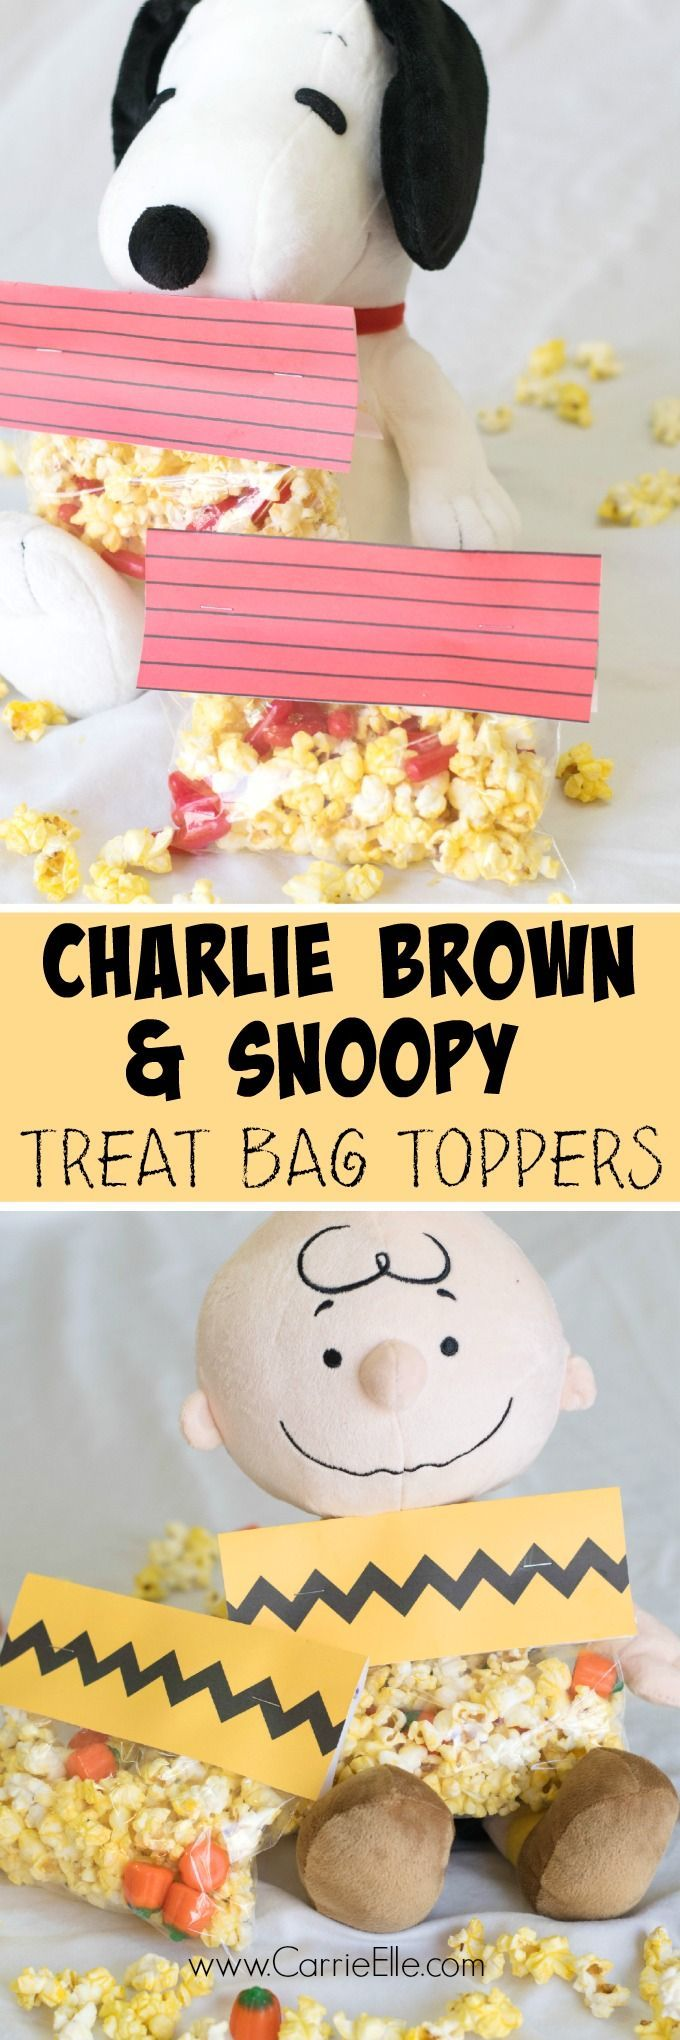 Free Party Printables: Charlie Brown and Snoopy Printable Bag Toppers (sponsored by Albertsons Safeway)